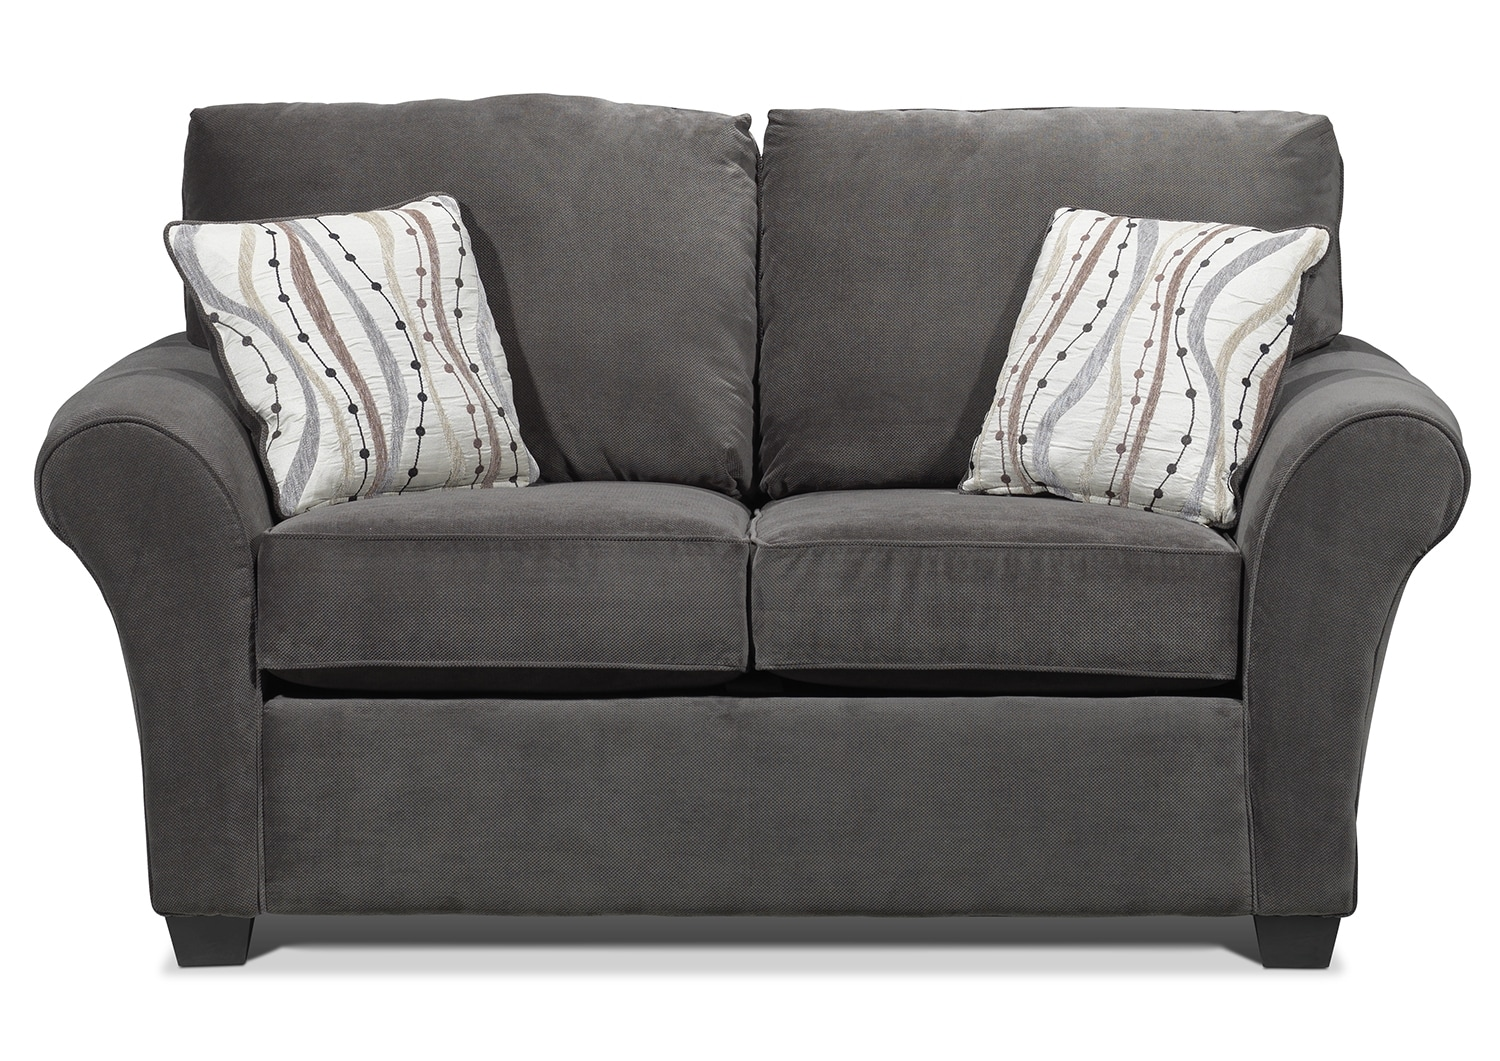 Langley Loveseat - Charcoal